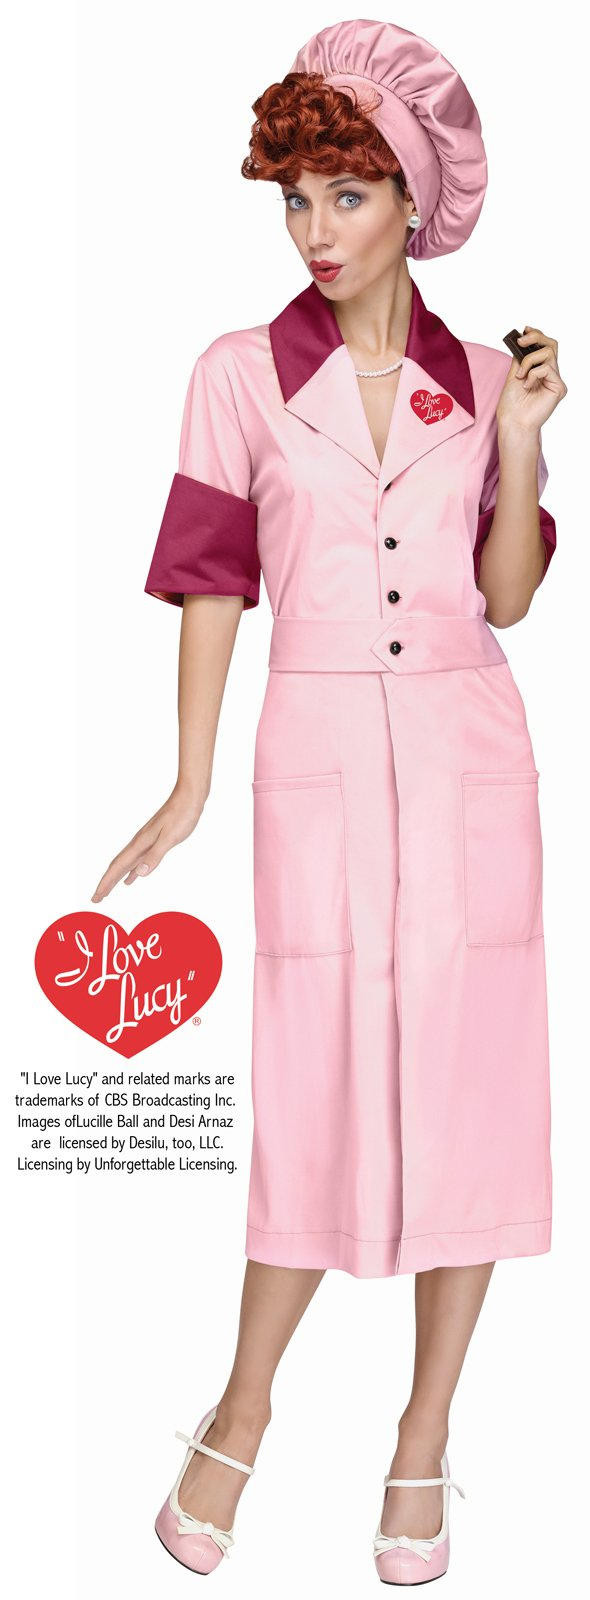 Fun World Women's Licensed I Love Lucy Candy Factory Dress, Multi, M/L Size 10-14